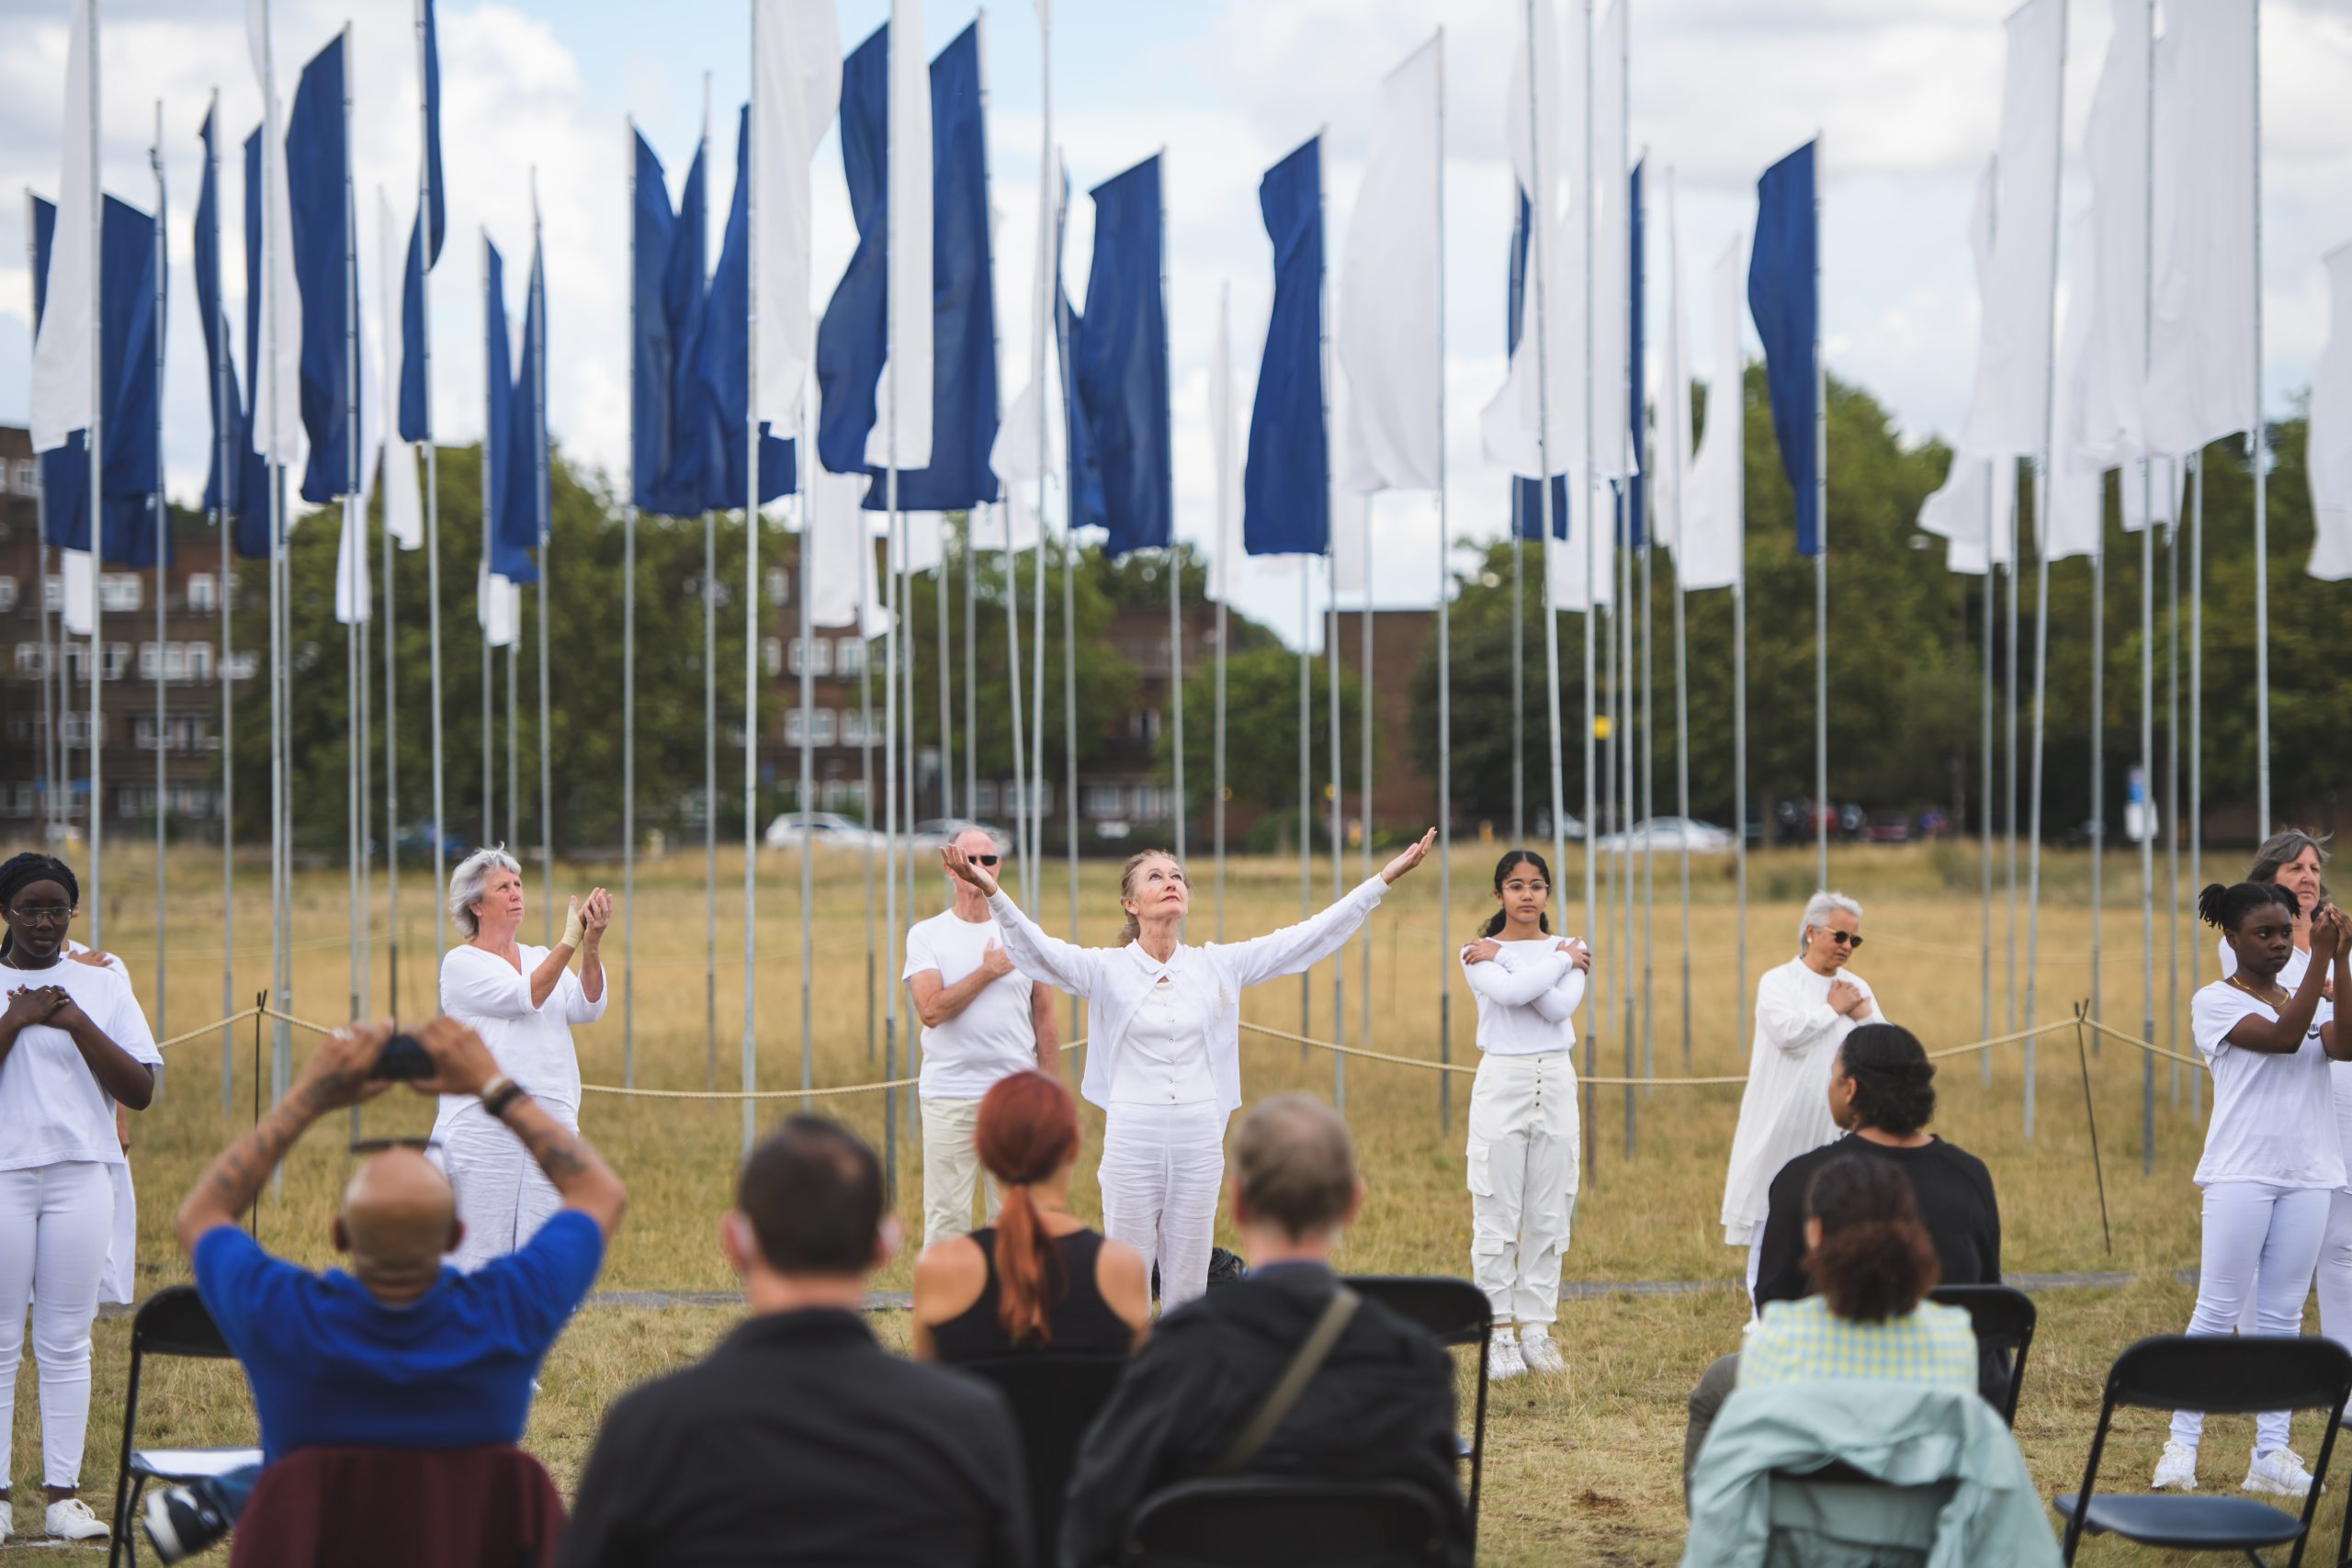 Five people dressed in white dancing in front of blue and white flags with audience watching in the foreground